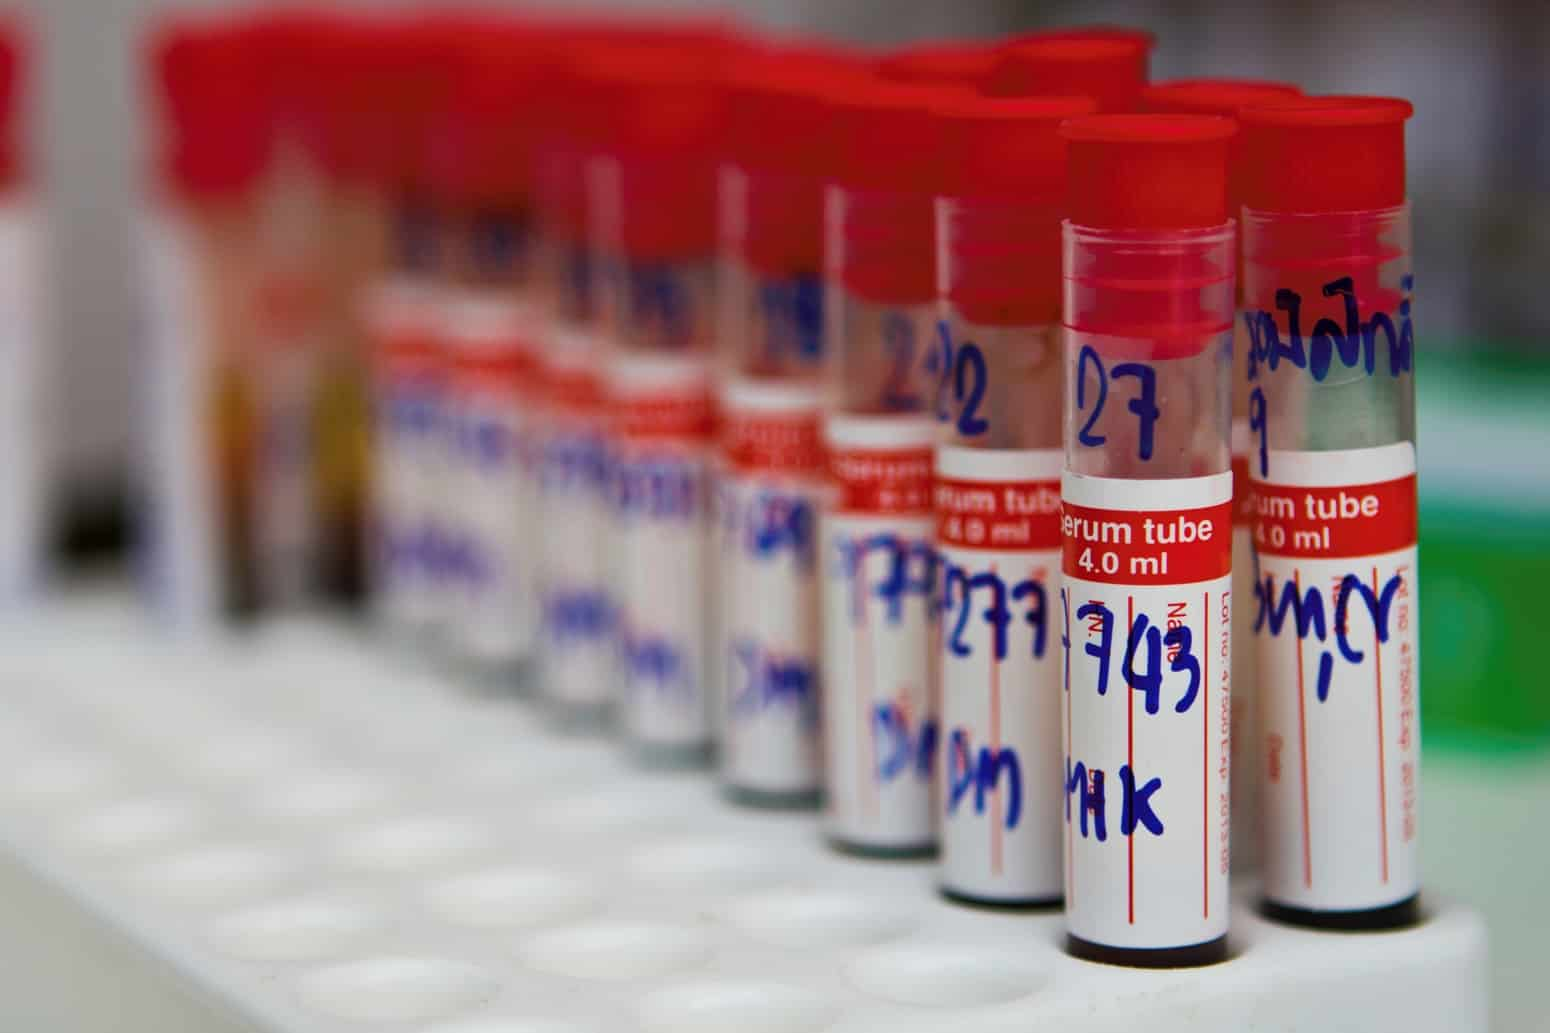 Test tubes with numbers